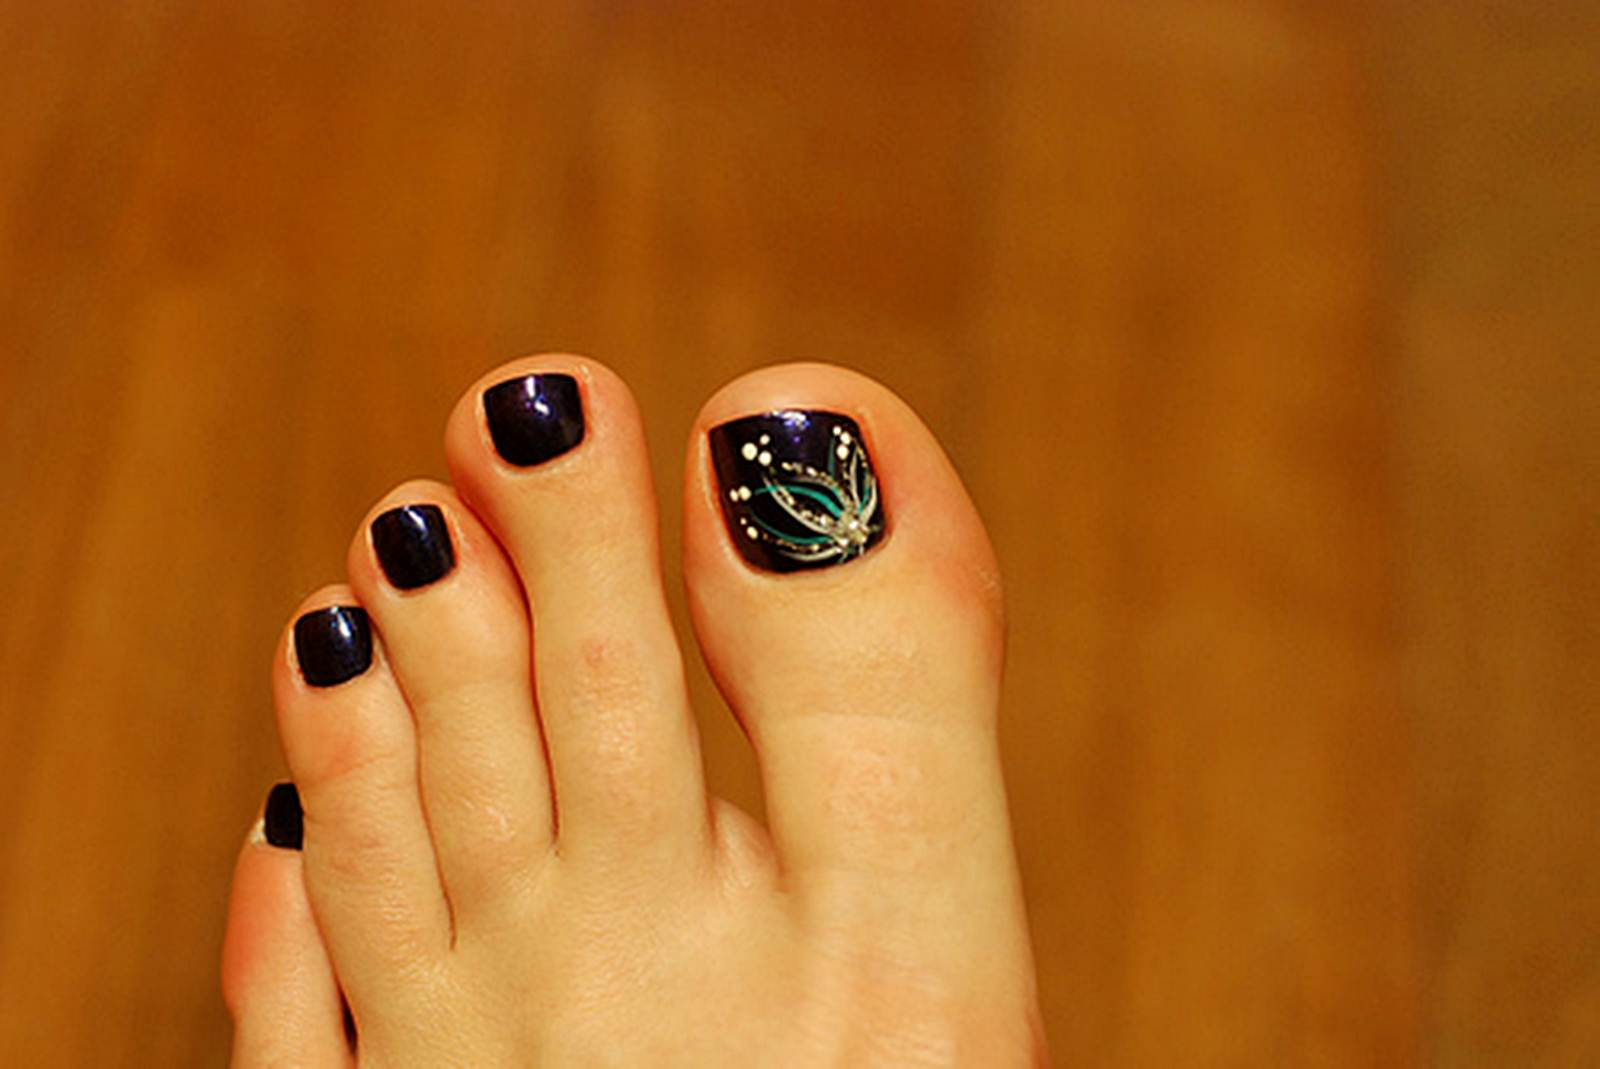 55 latest toe nail art designs black toe nails with flowers design nail art prinsesfo Image collections